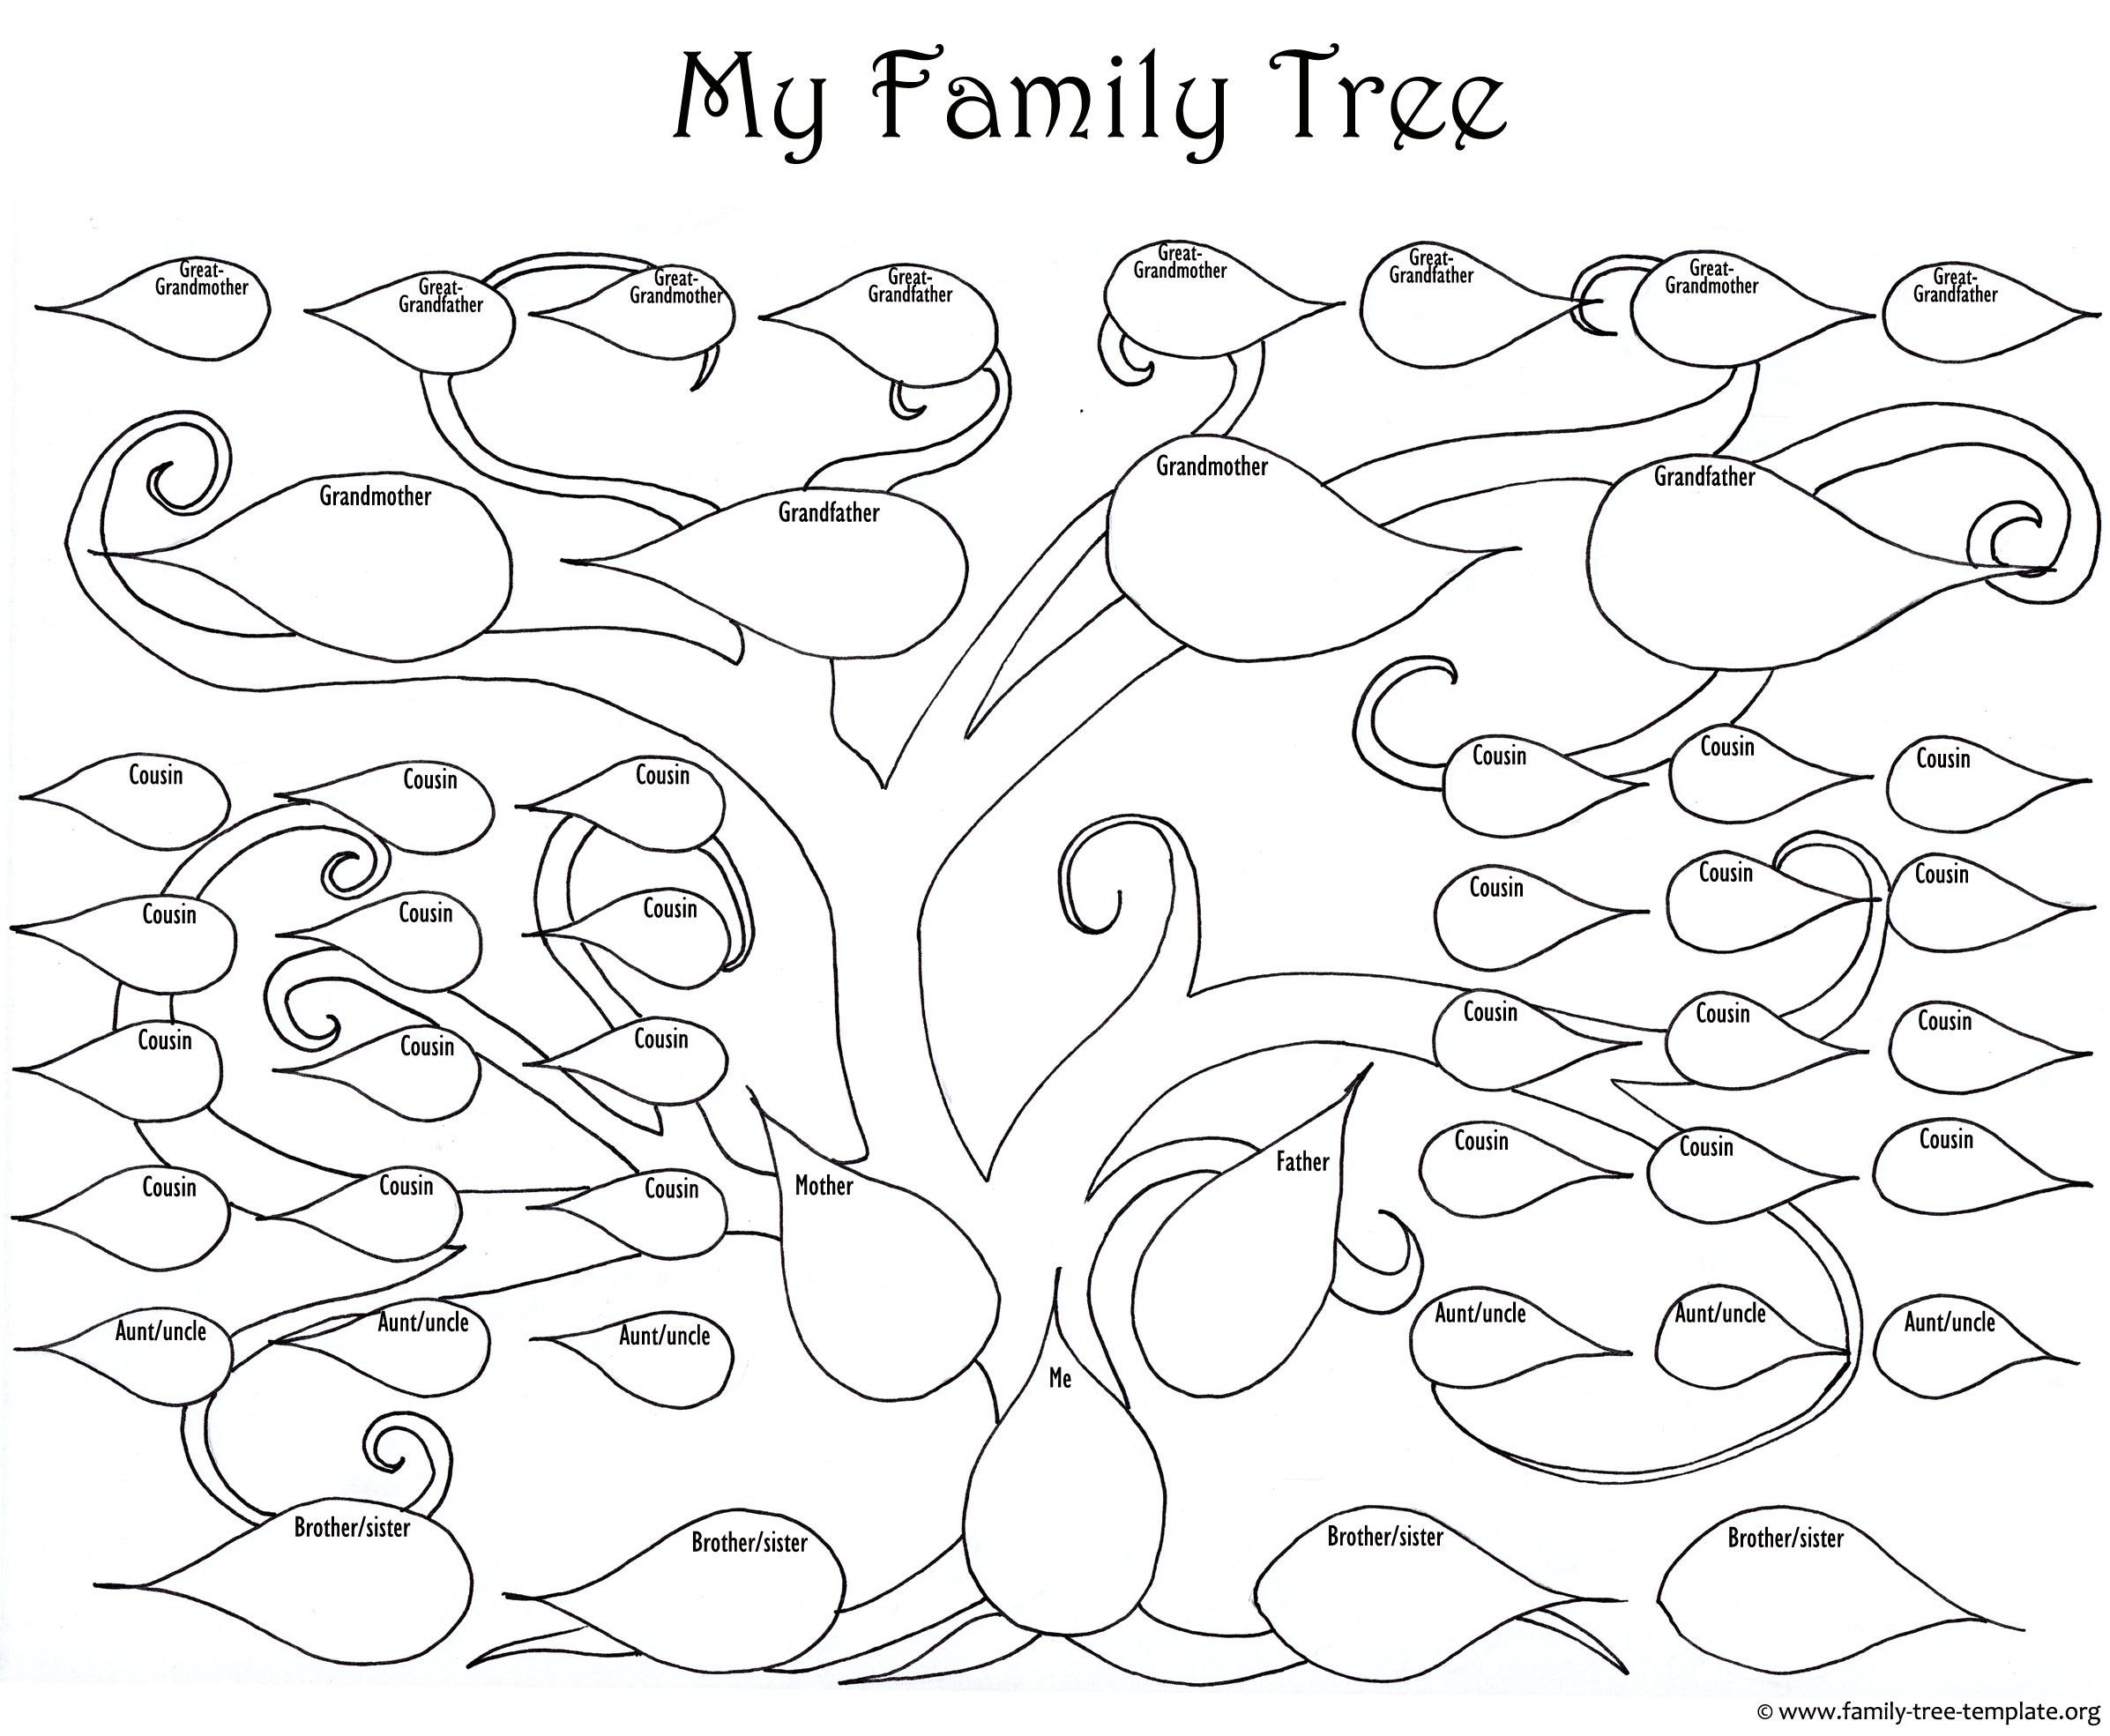 A printable blank family tree to make your kids genealogy for Genealogy templates for family trees